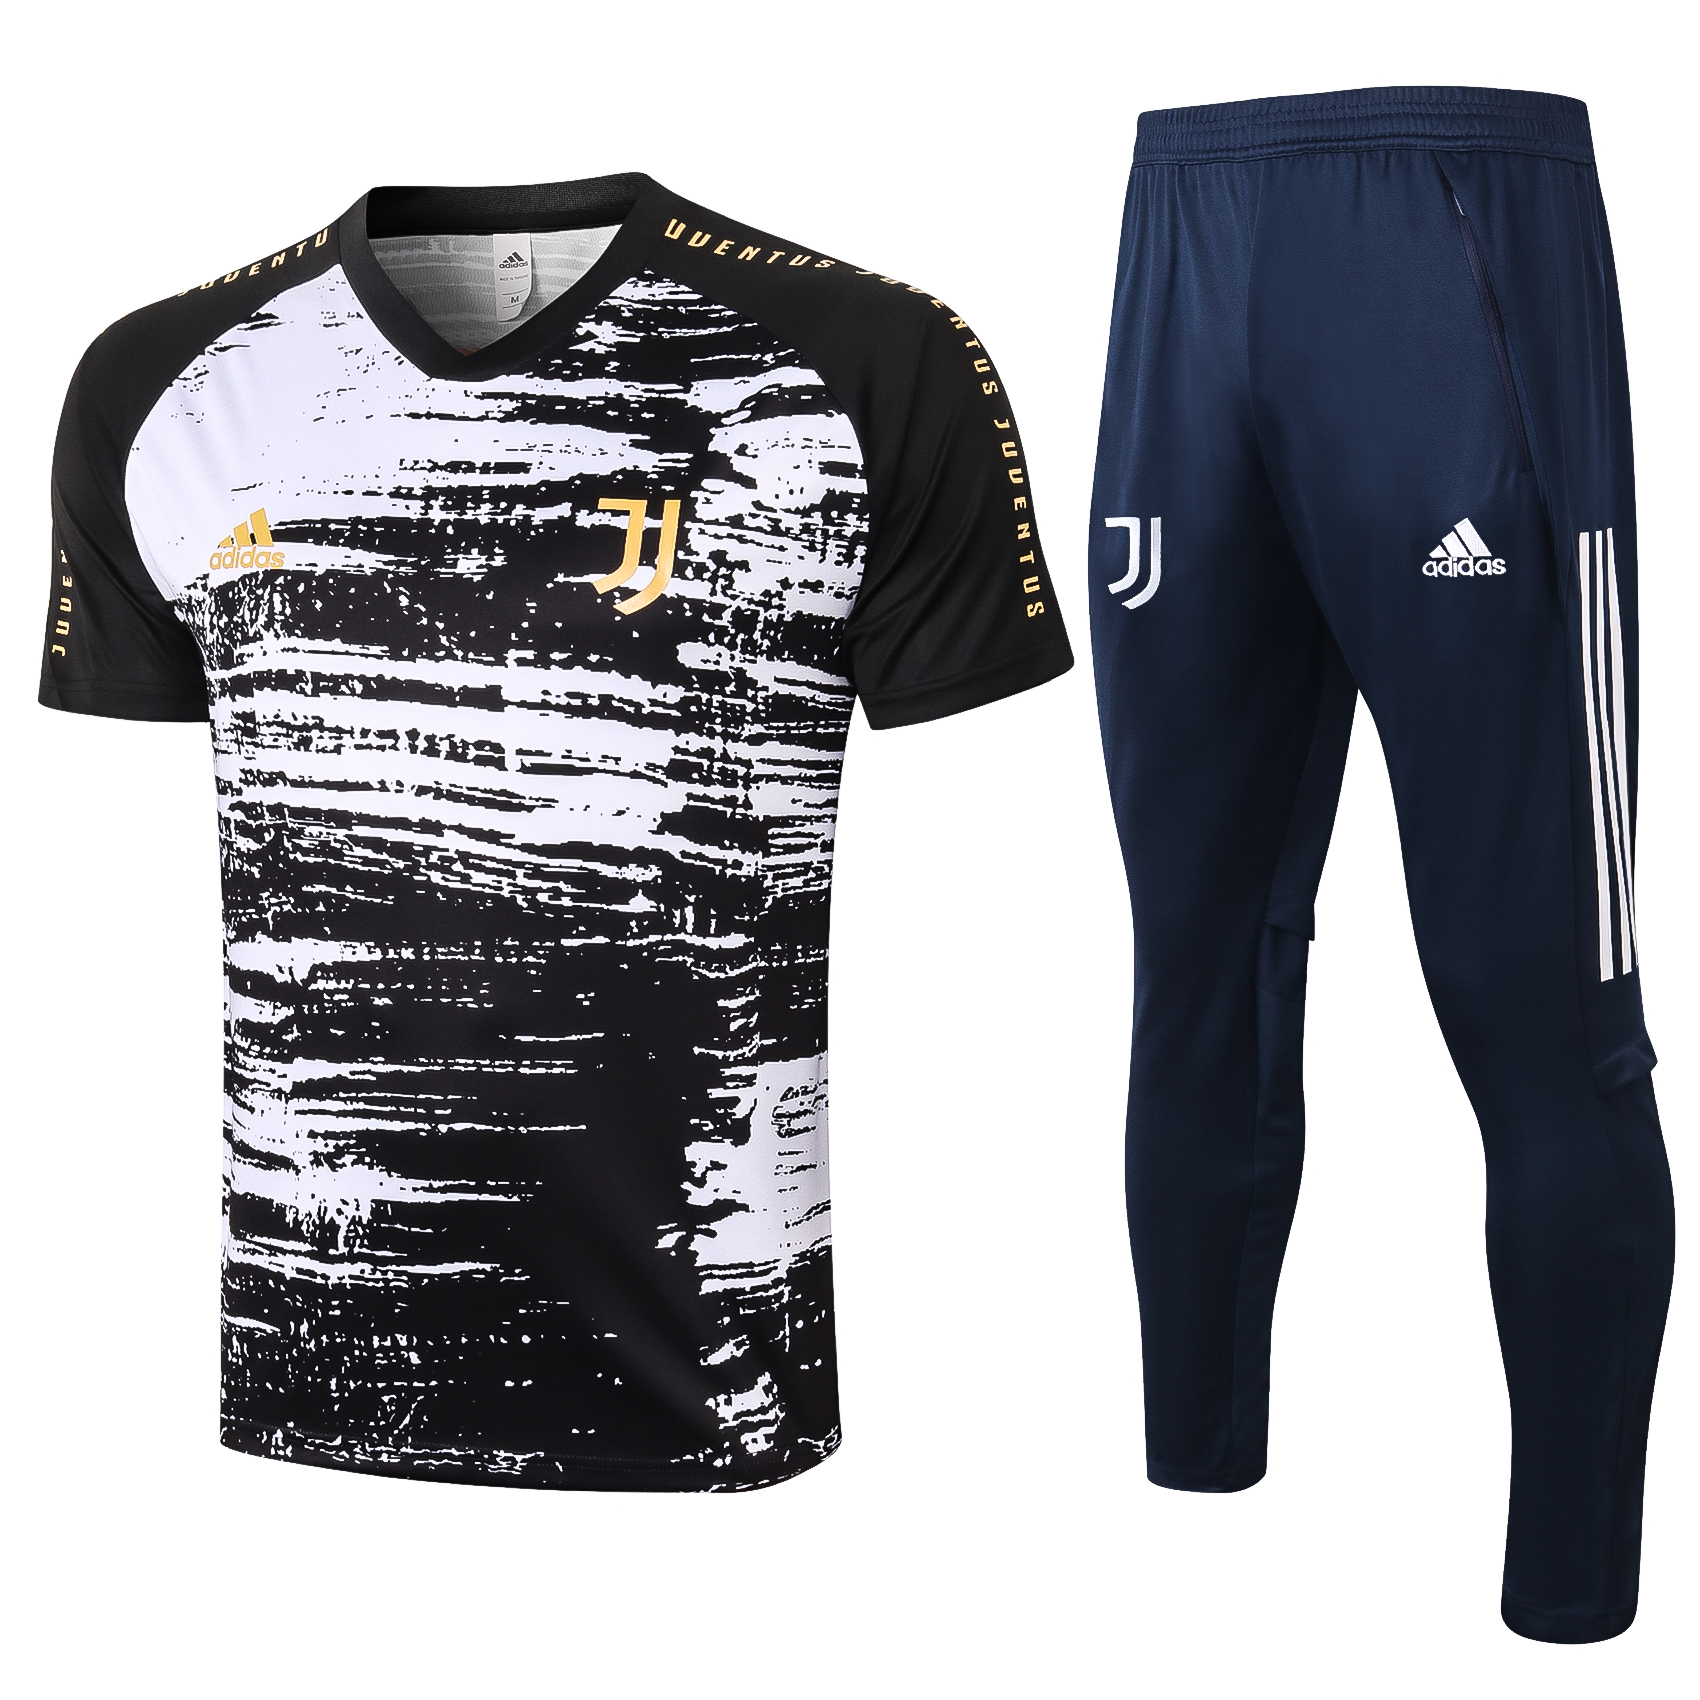 20 21 season juventus mixed white color training shirt pants juventus pre match suit 19 20 season juventus ad palace black color training shirt 28 00 footballinbox top quality football jersey and kids football uniform footballinbox top quality football jersey and kids football uniform